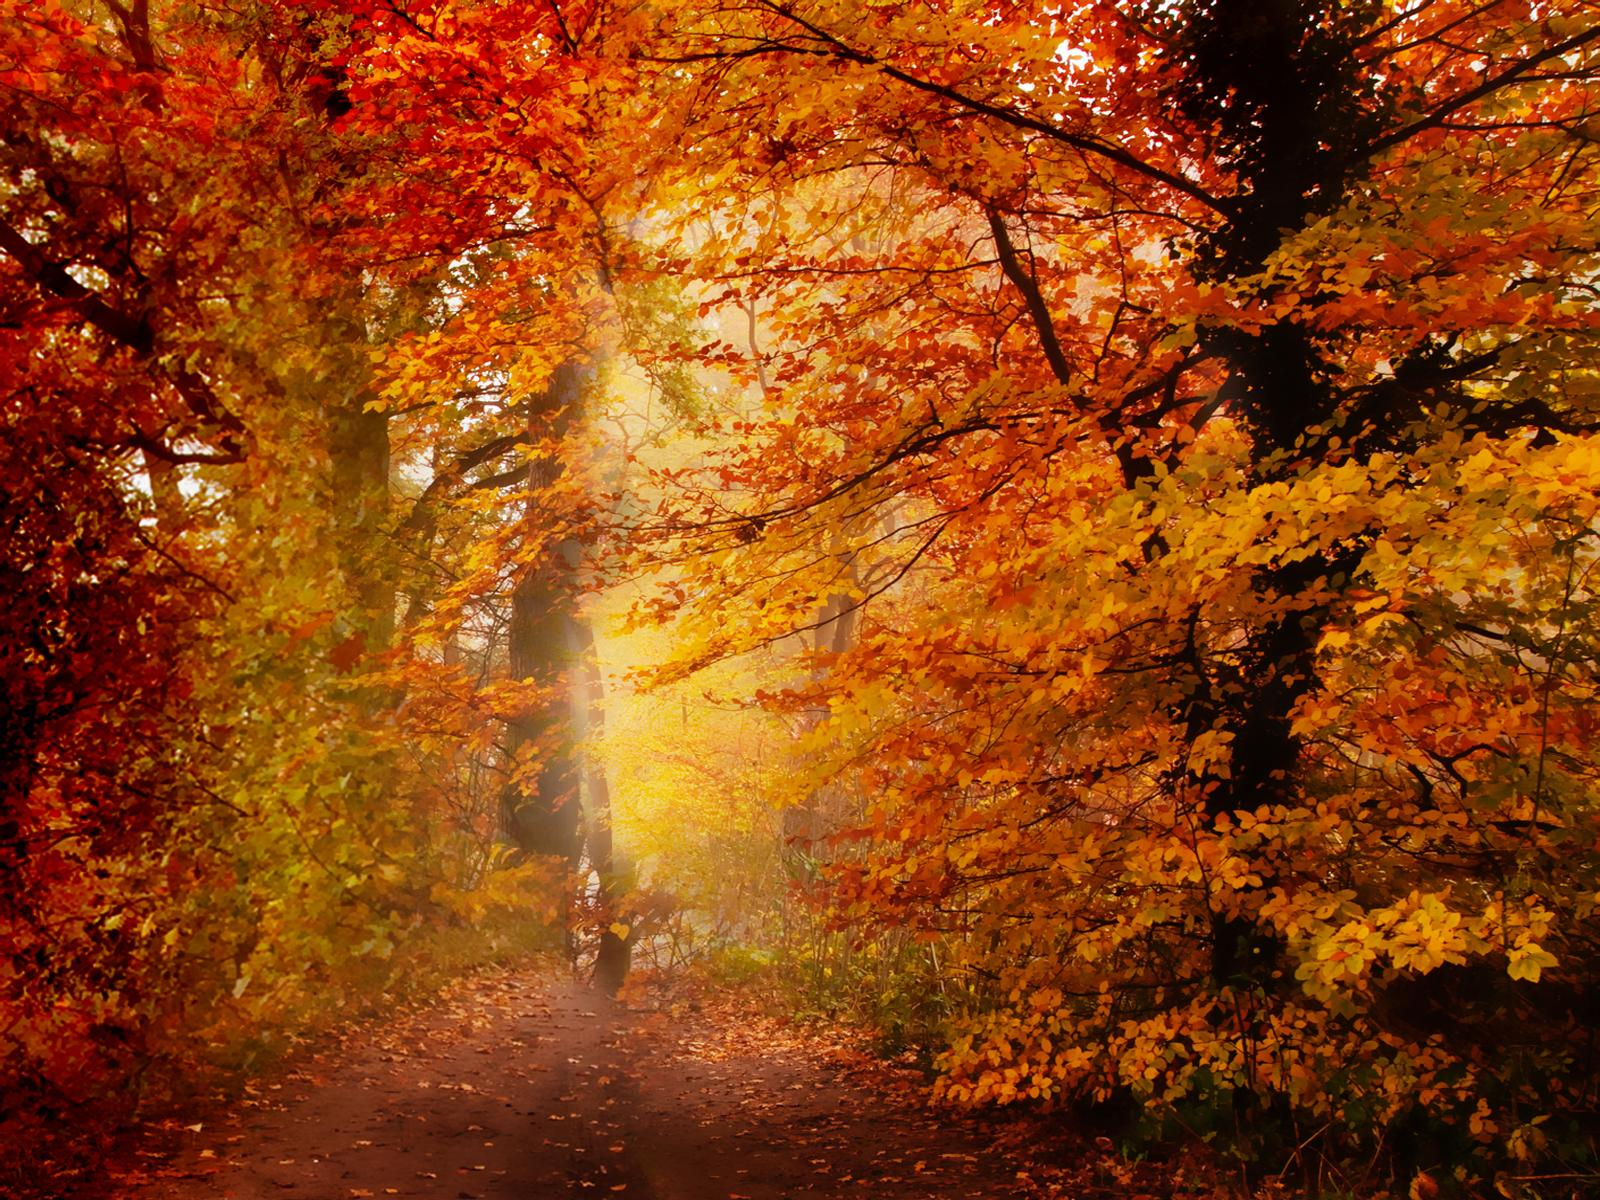 37 New England Autumn Wallpaper On Wallpapersafari